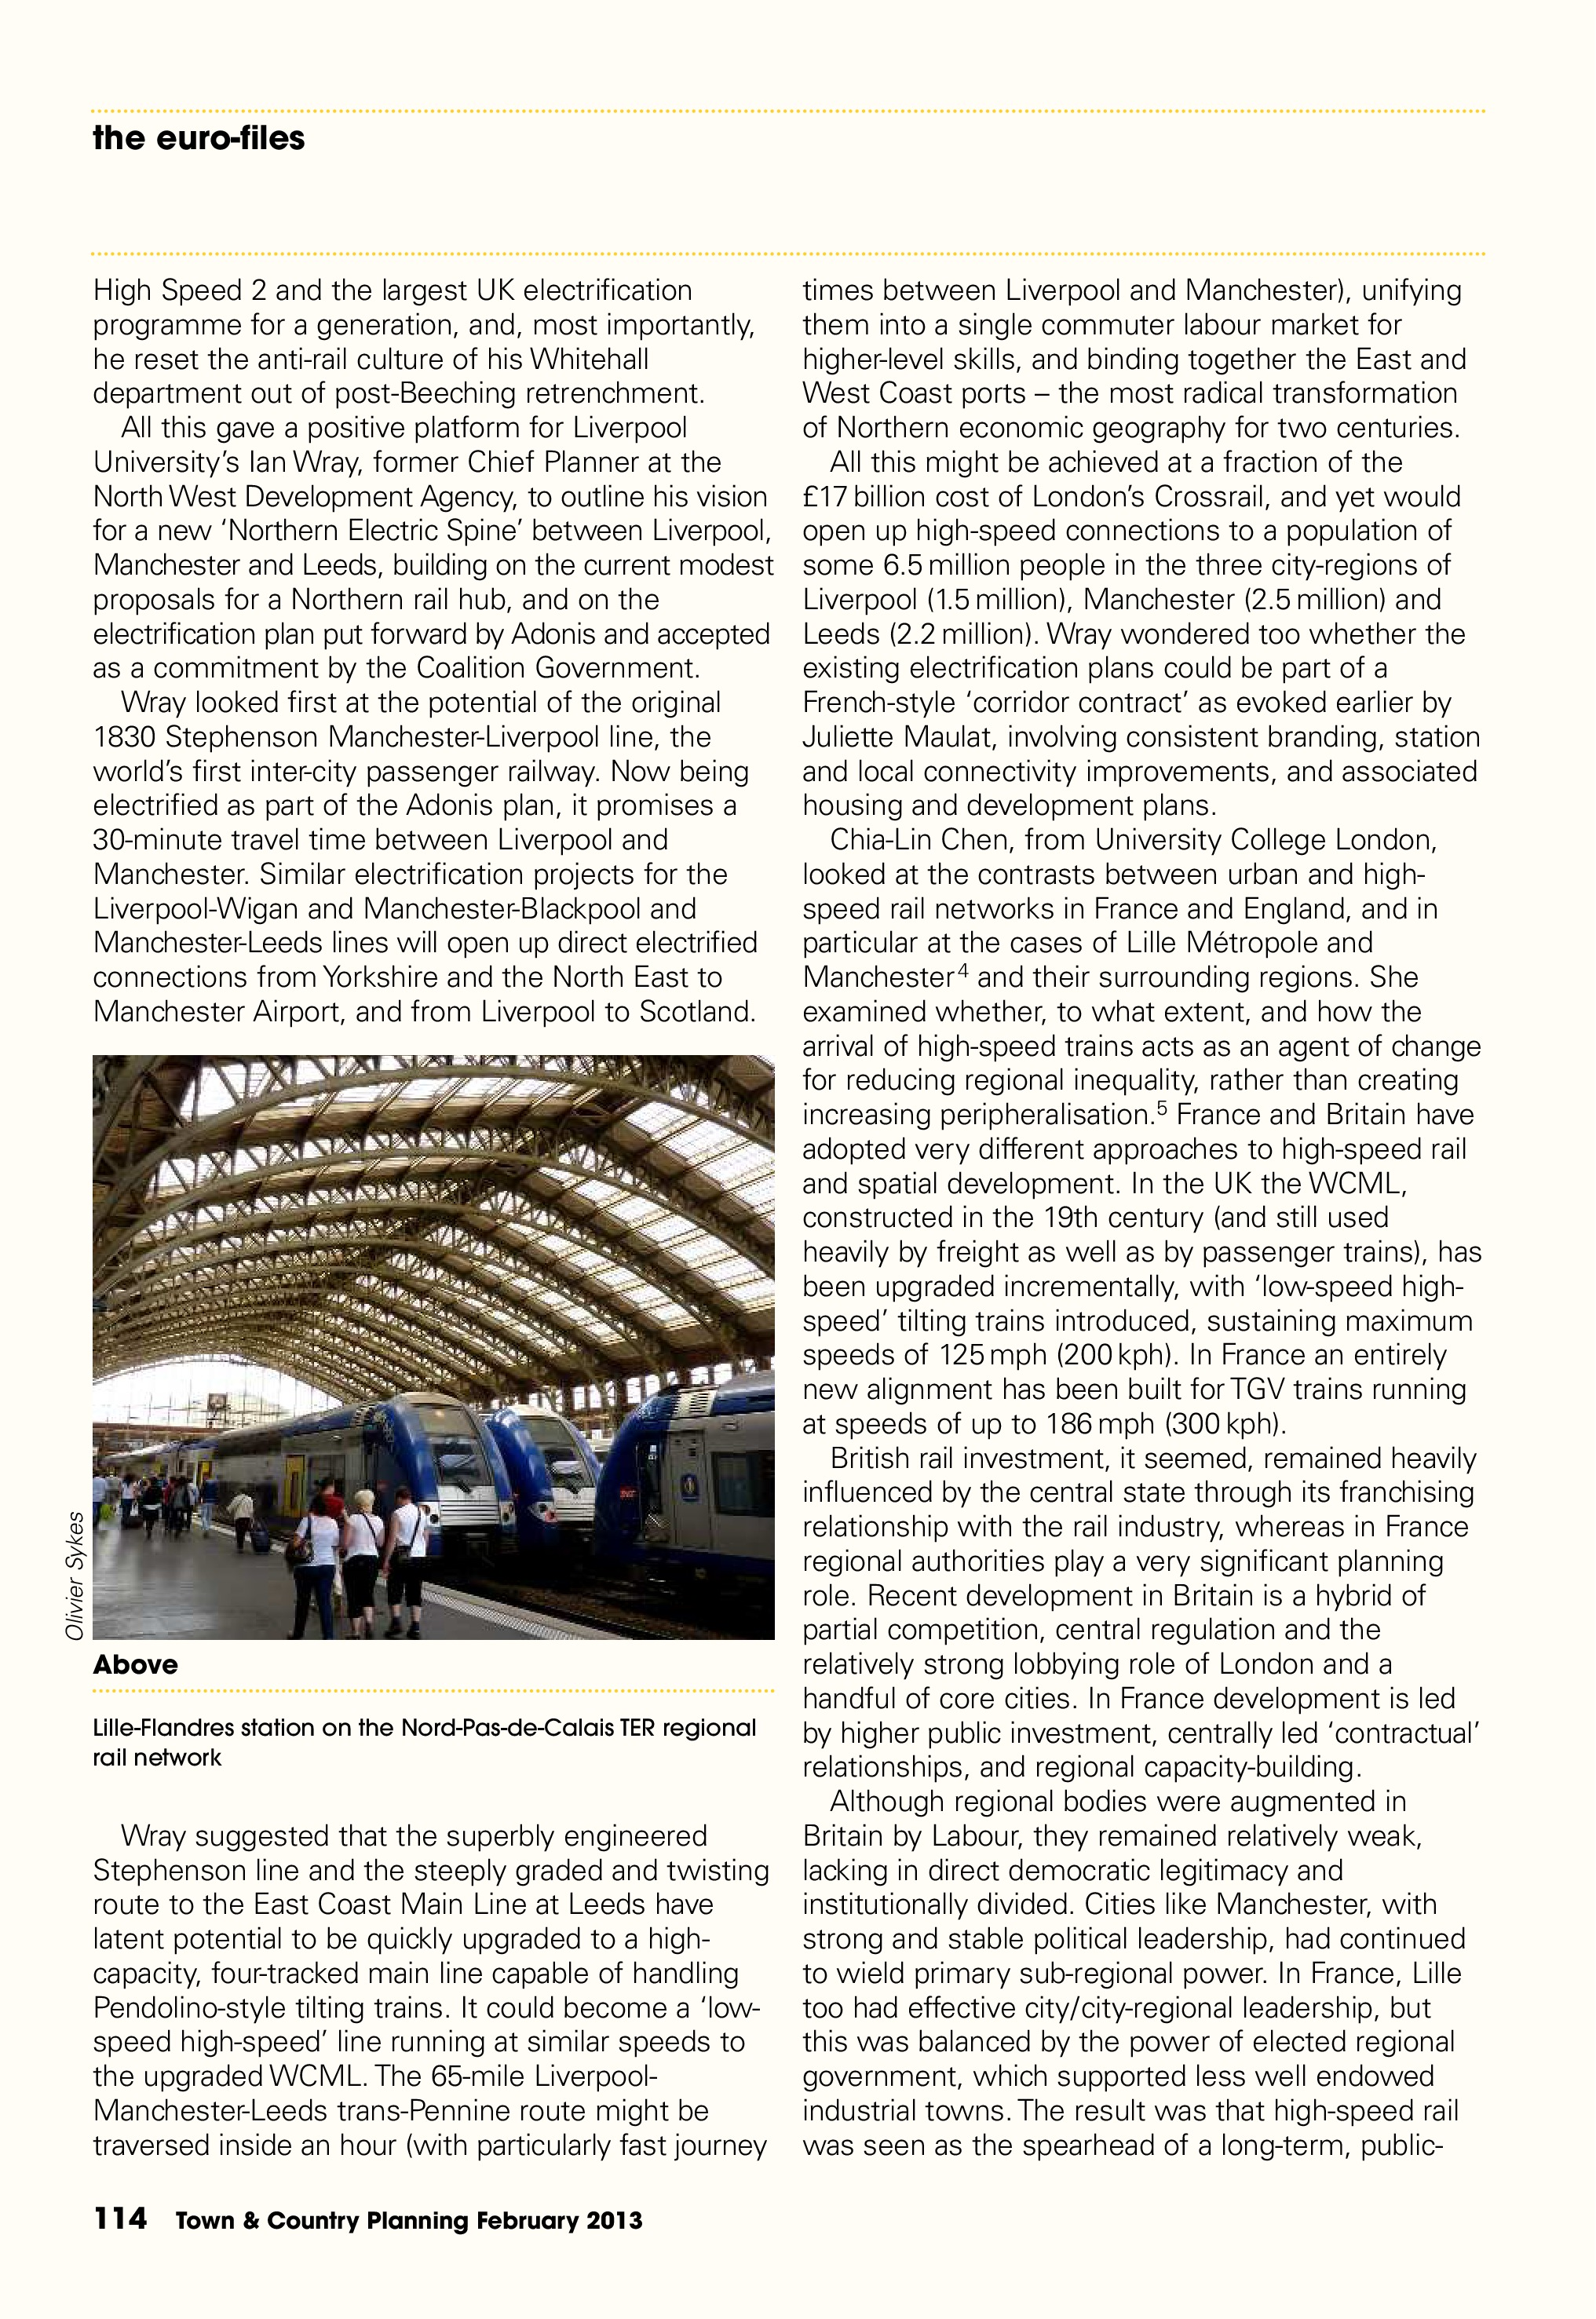 Town & Country Planning Association Journal, February 2013: 'Pulling the Right Levers' - 2nd Liverpool-Paris Rail Group Conference, p5/6